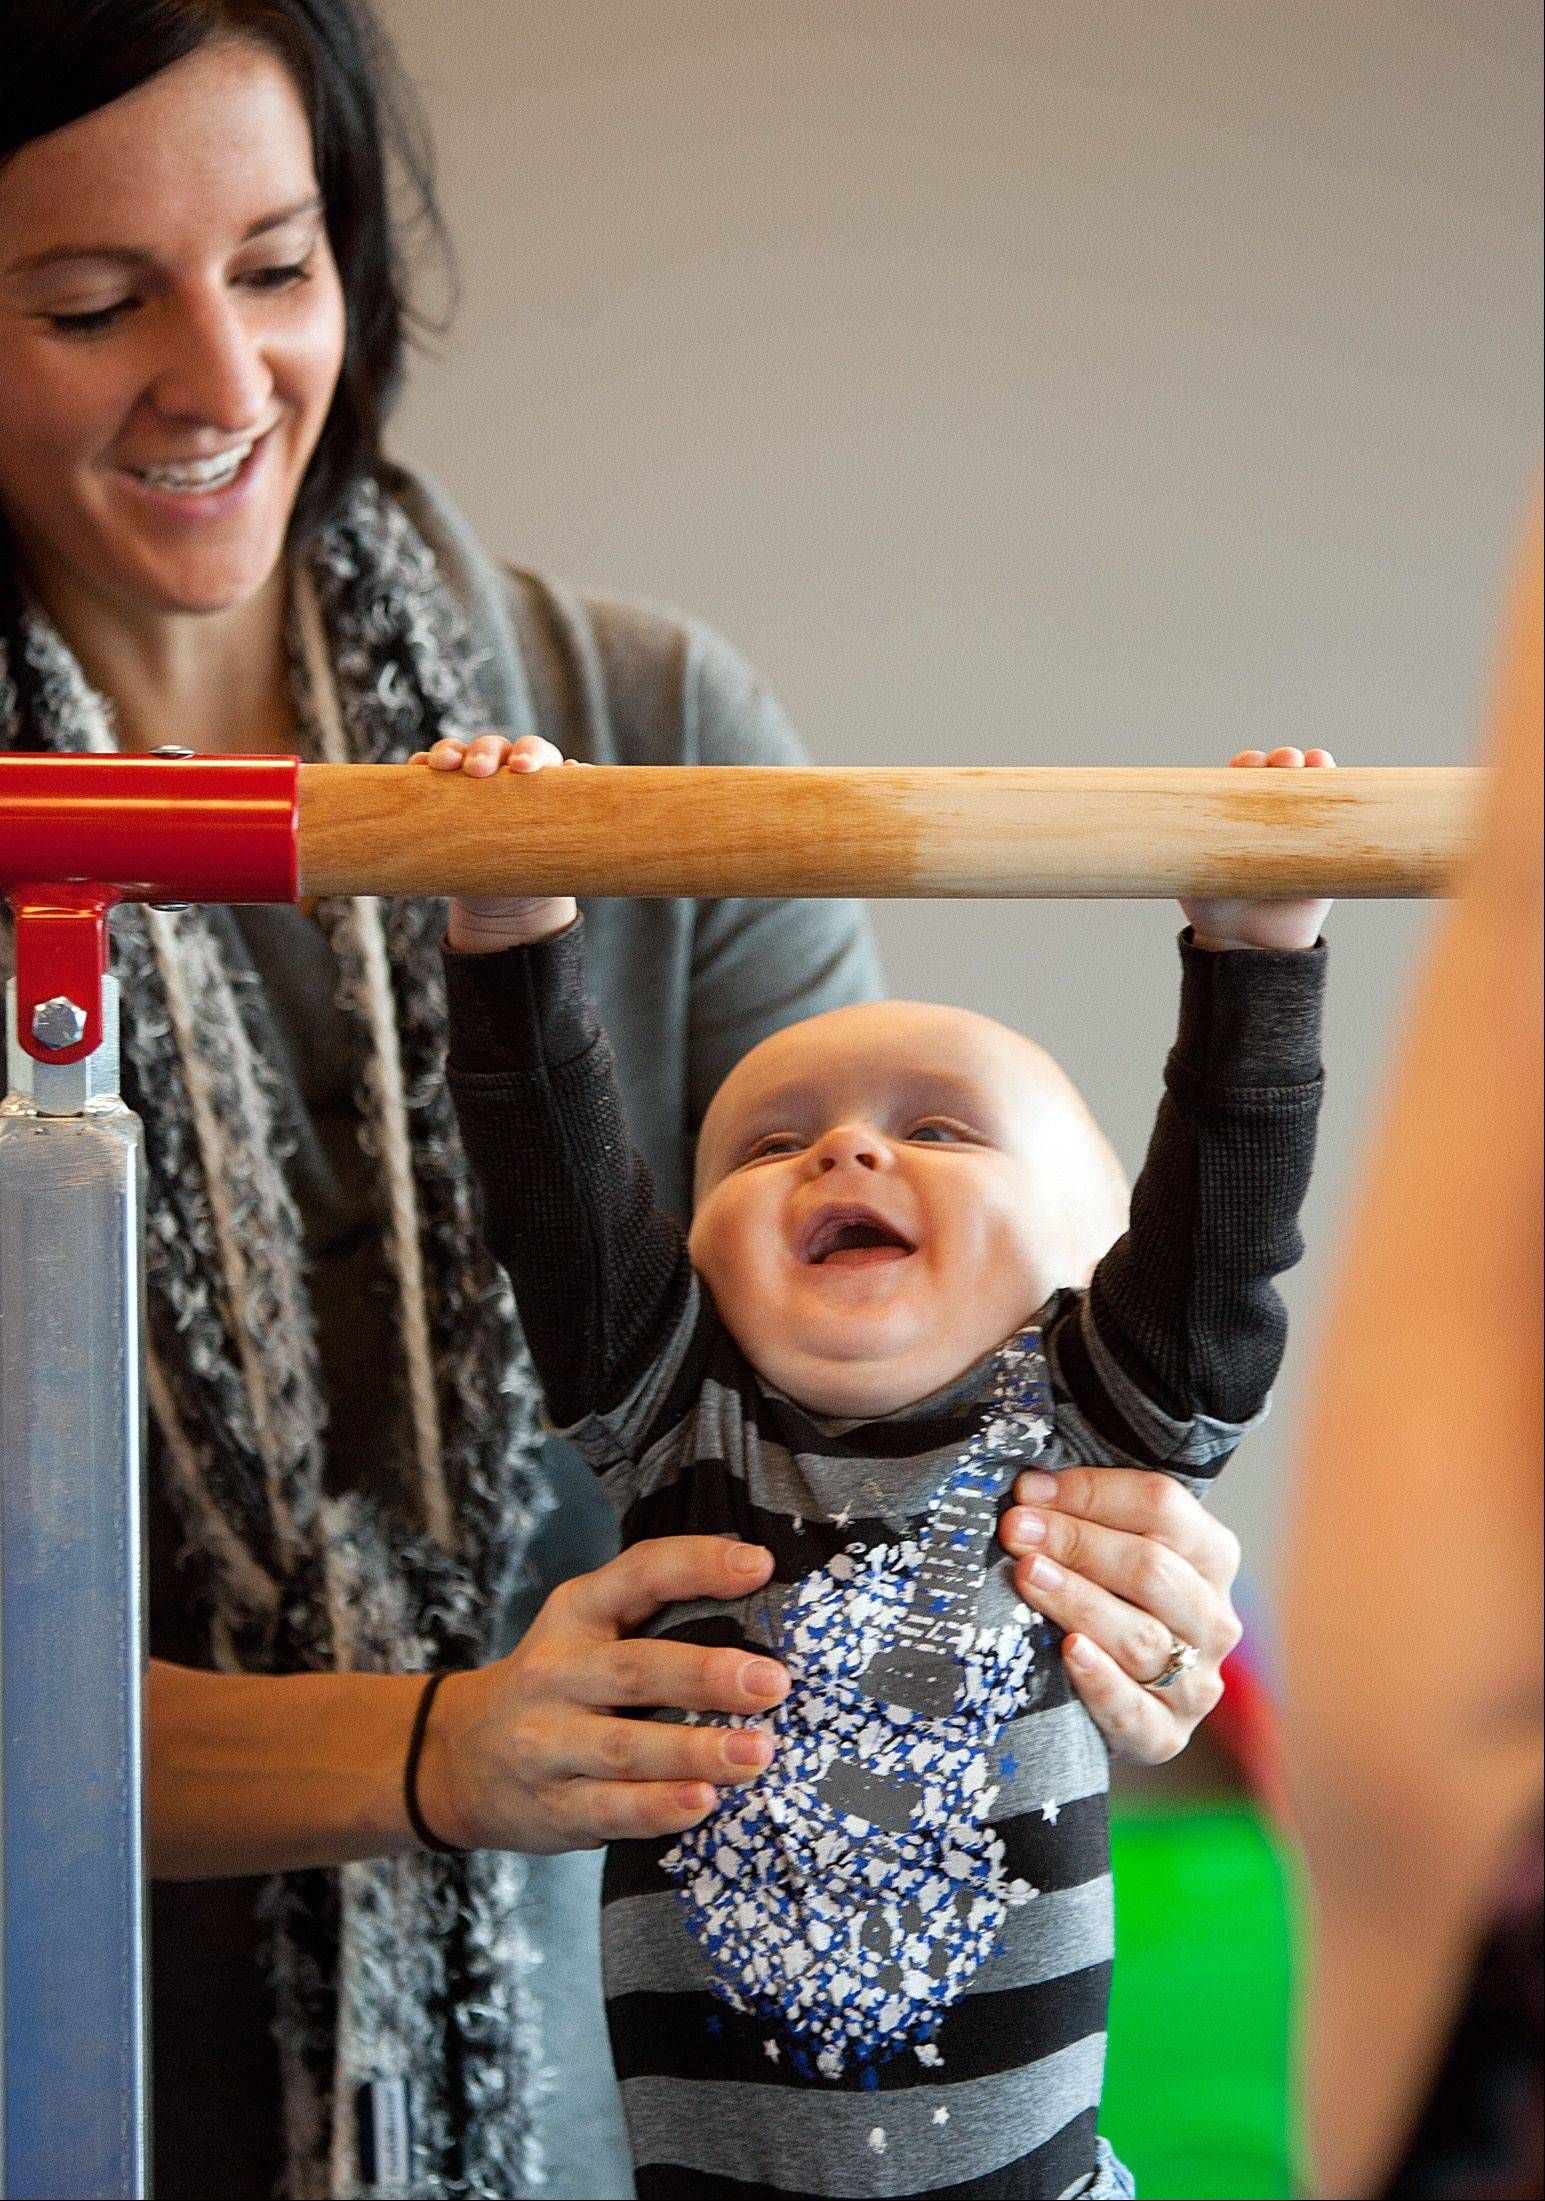 Bridgett Atwell of Mokena helps her 7-month-old son, Landon, hold onto the uneven bars Saturday in the gymnastics area of the Naperville Park District's new 95th Street Center. The center hosted a grand opening Saturday morning for residents to explore its gymnastics, dance and culinary facilities.